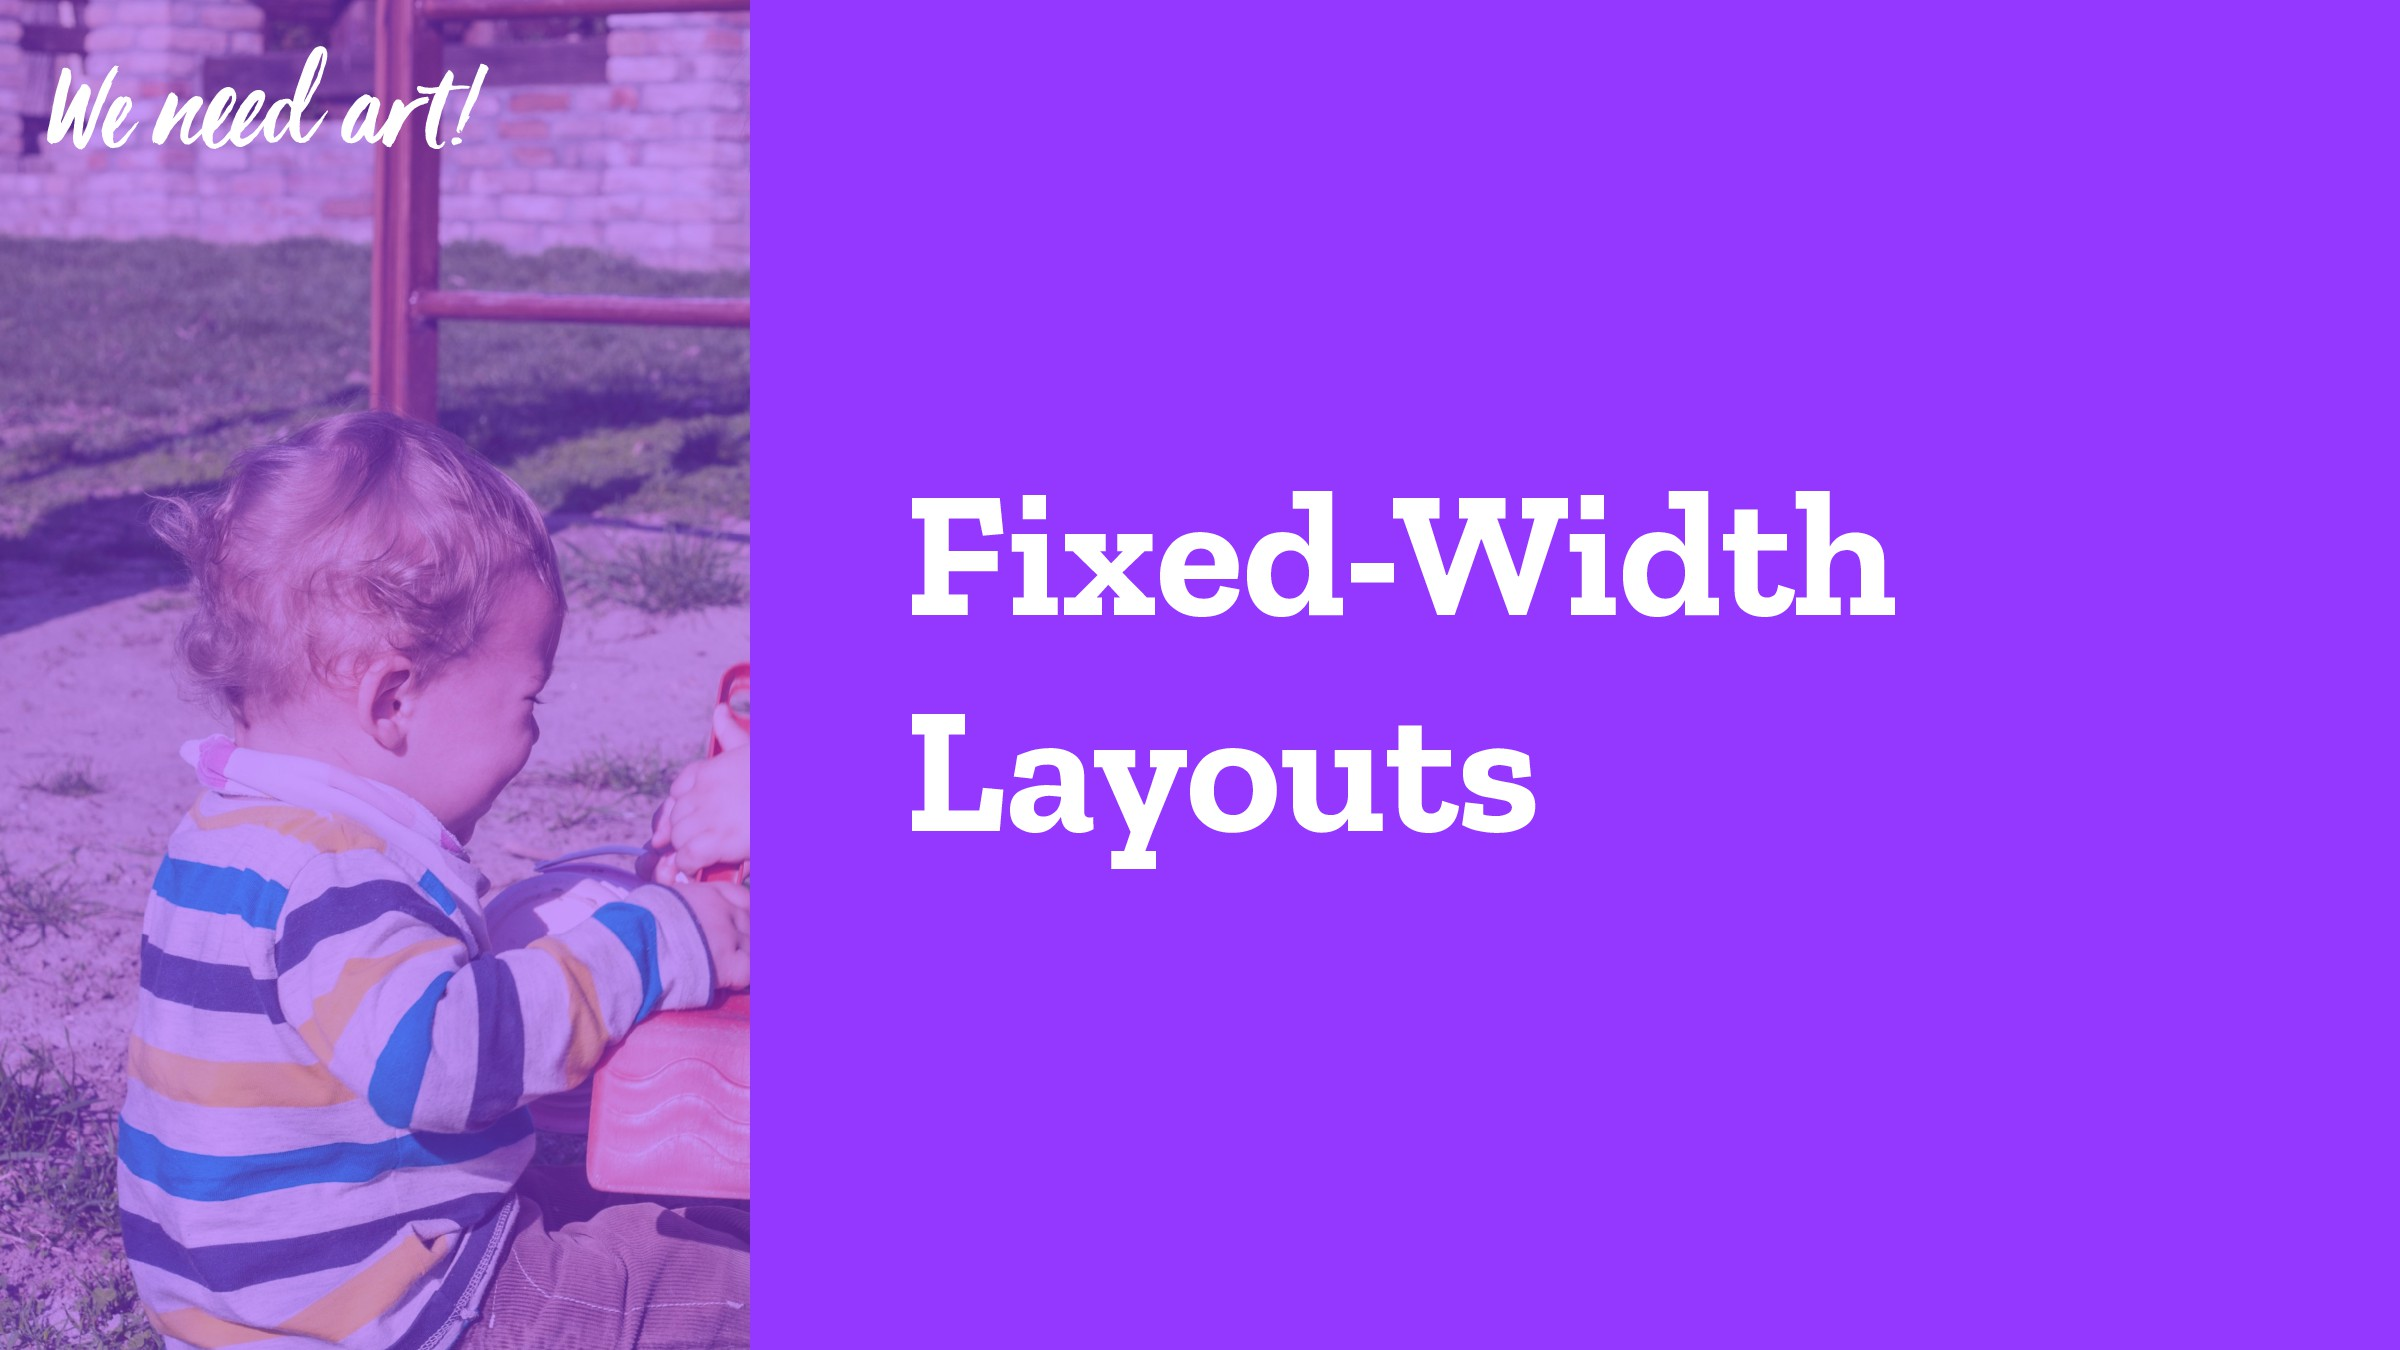 """Fixed-Width Layouts We n""""d a#!"""